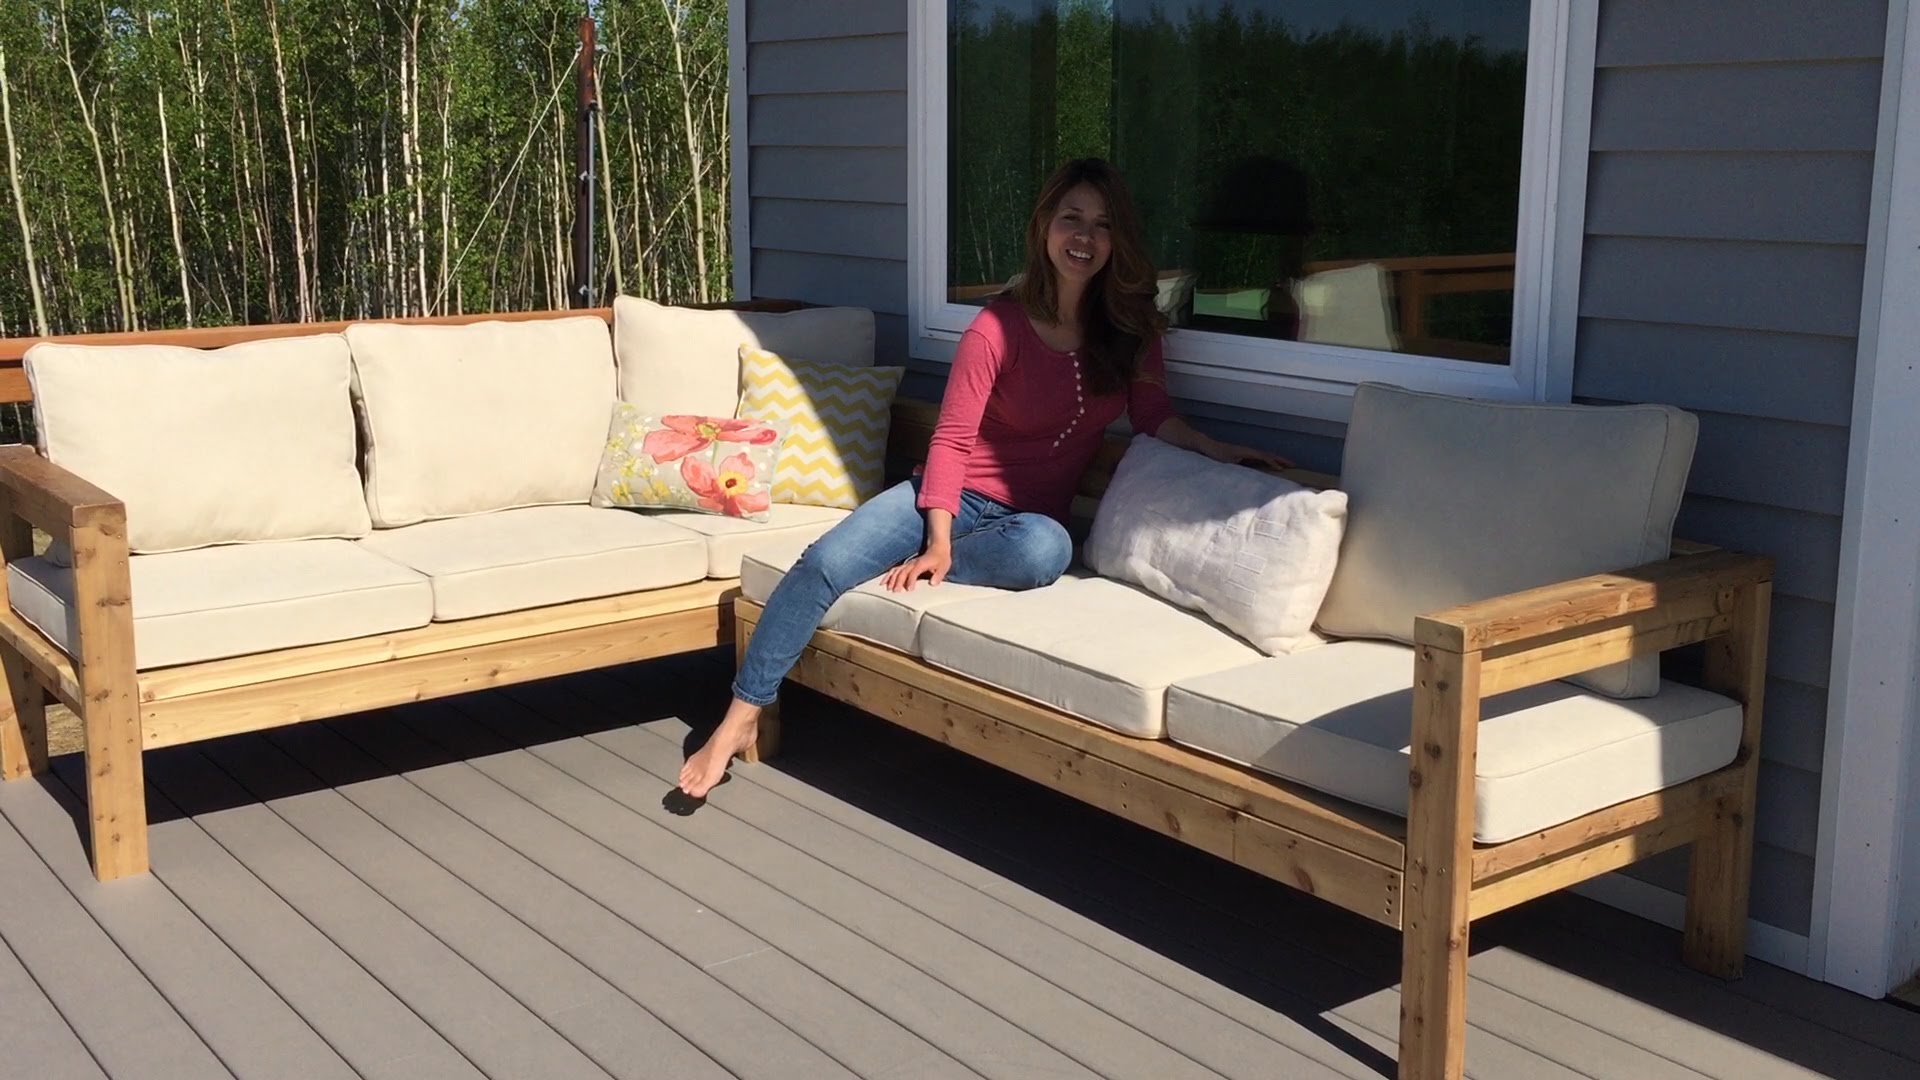 outdoor couch how to build a 2x4 outdoor sectional tutorial - youtube RTEYAWH